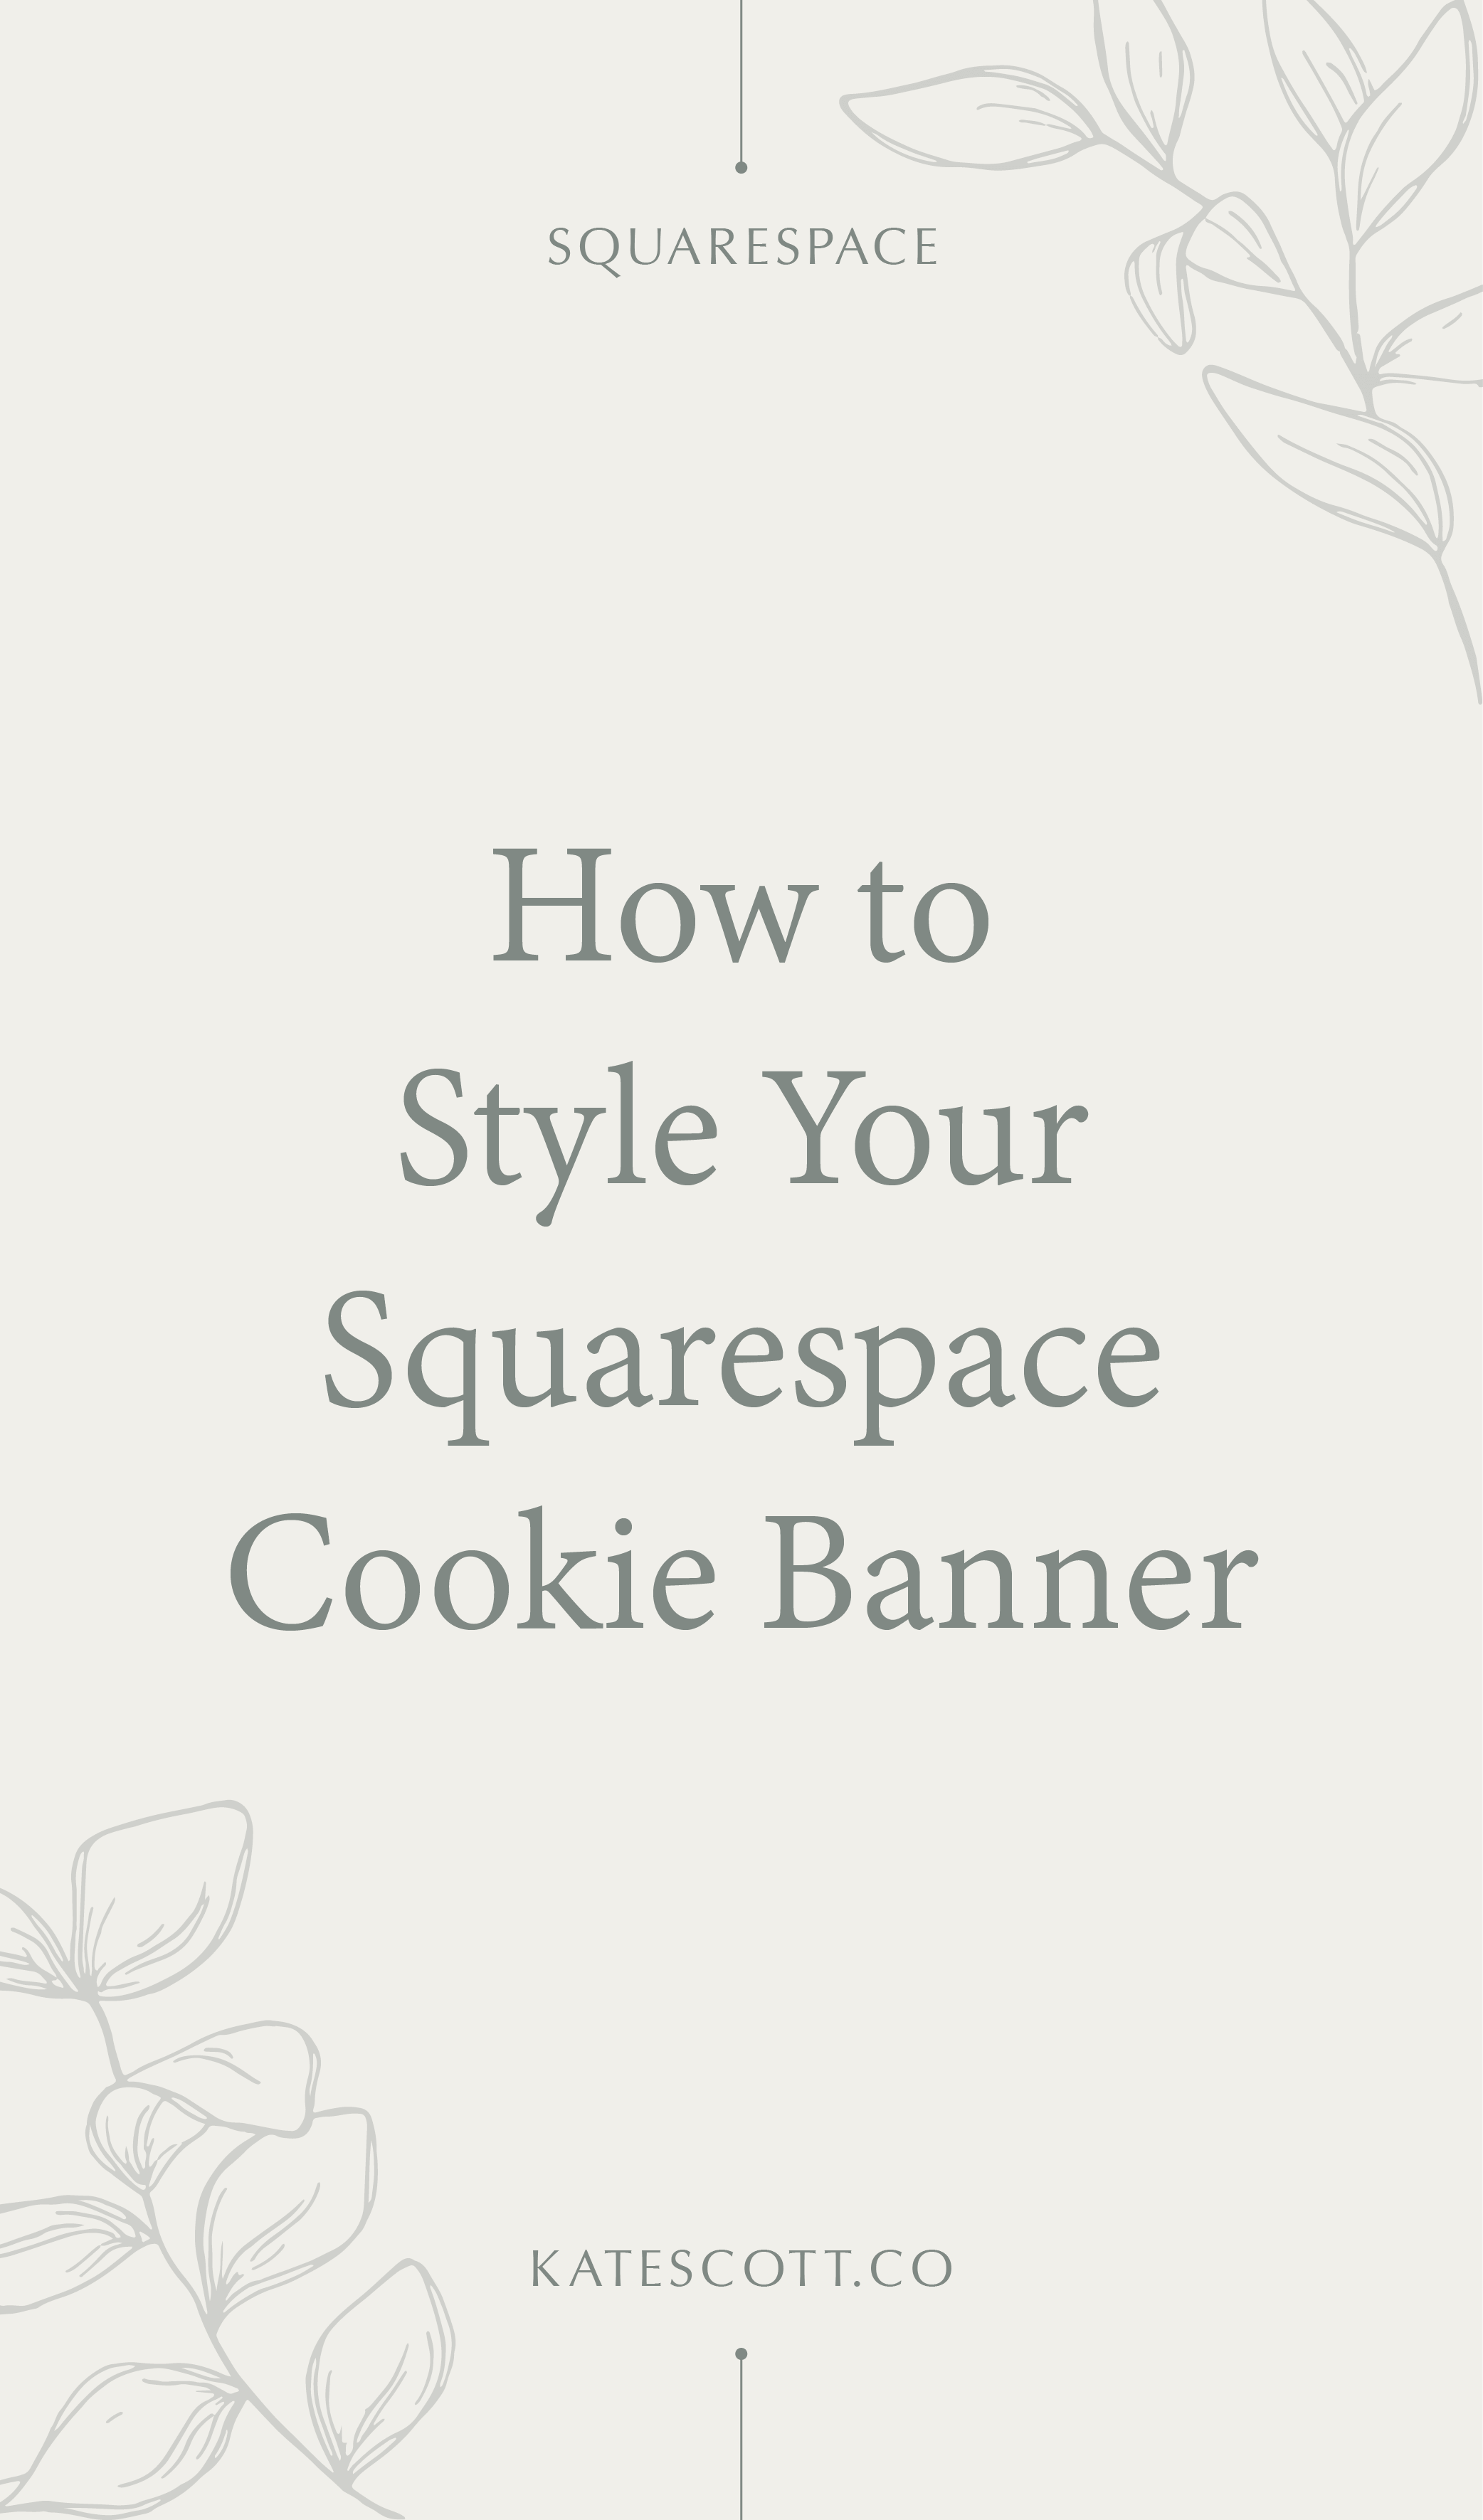 Want to customize the Squarespace cookie banner beyond the basic settings? This easy tutorial will show you exactly how! | Squarespace Tutorial Design | Squarespace CSS Tricks | Squarespace CSS Hacks | Squarespace CSS Code | Squarespace CSS Web Design | Squarespace Design